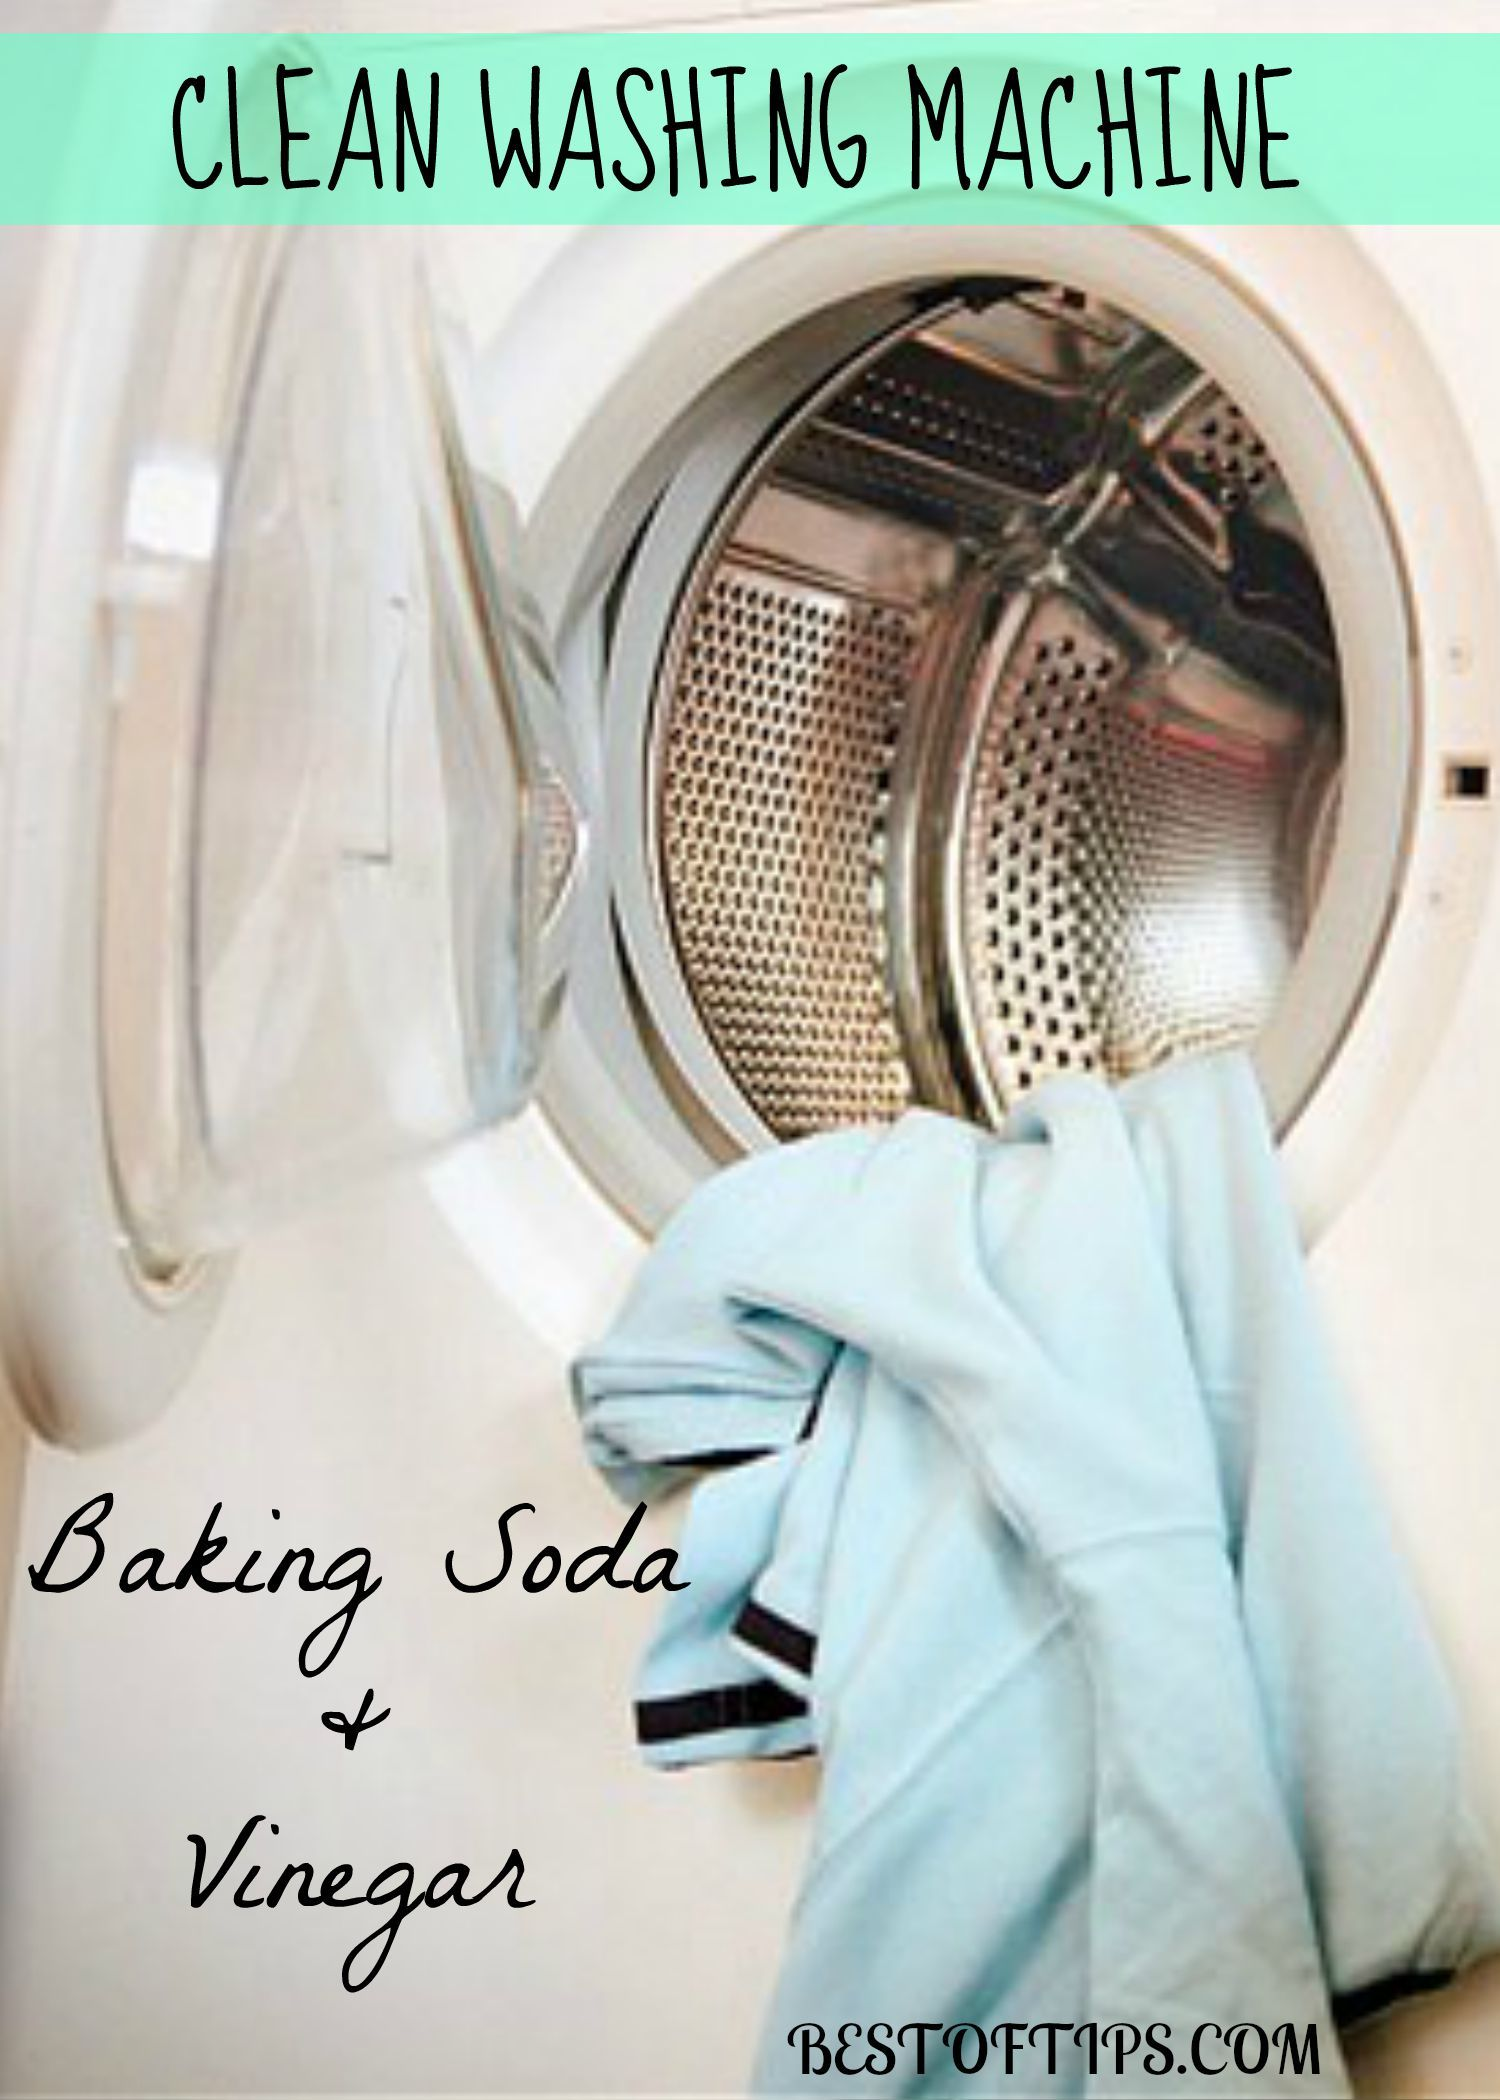 Clean Washing Machine Naturally Cleaning Tips Clean Washing